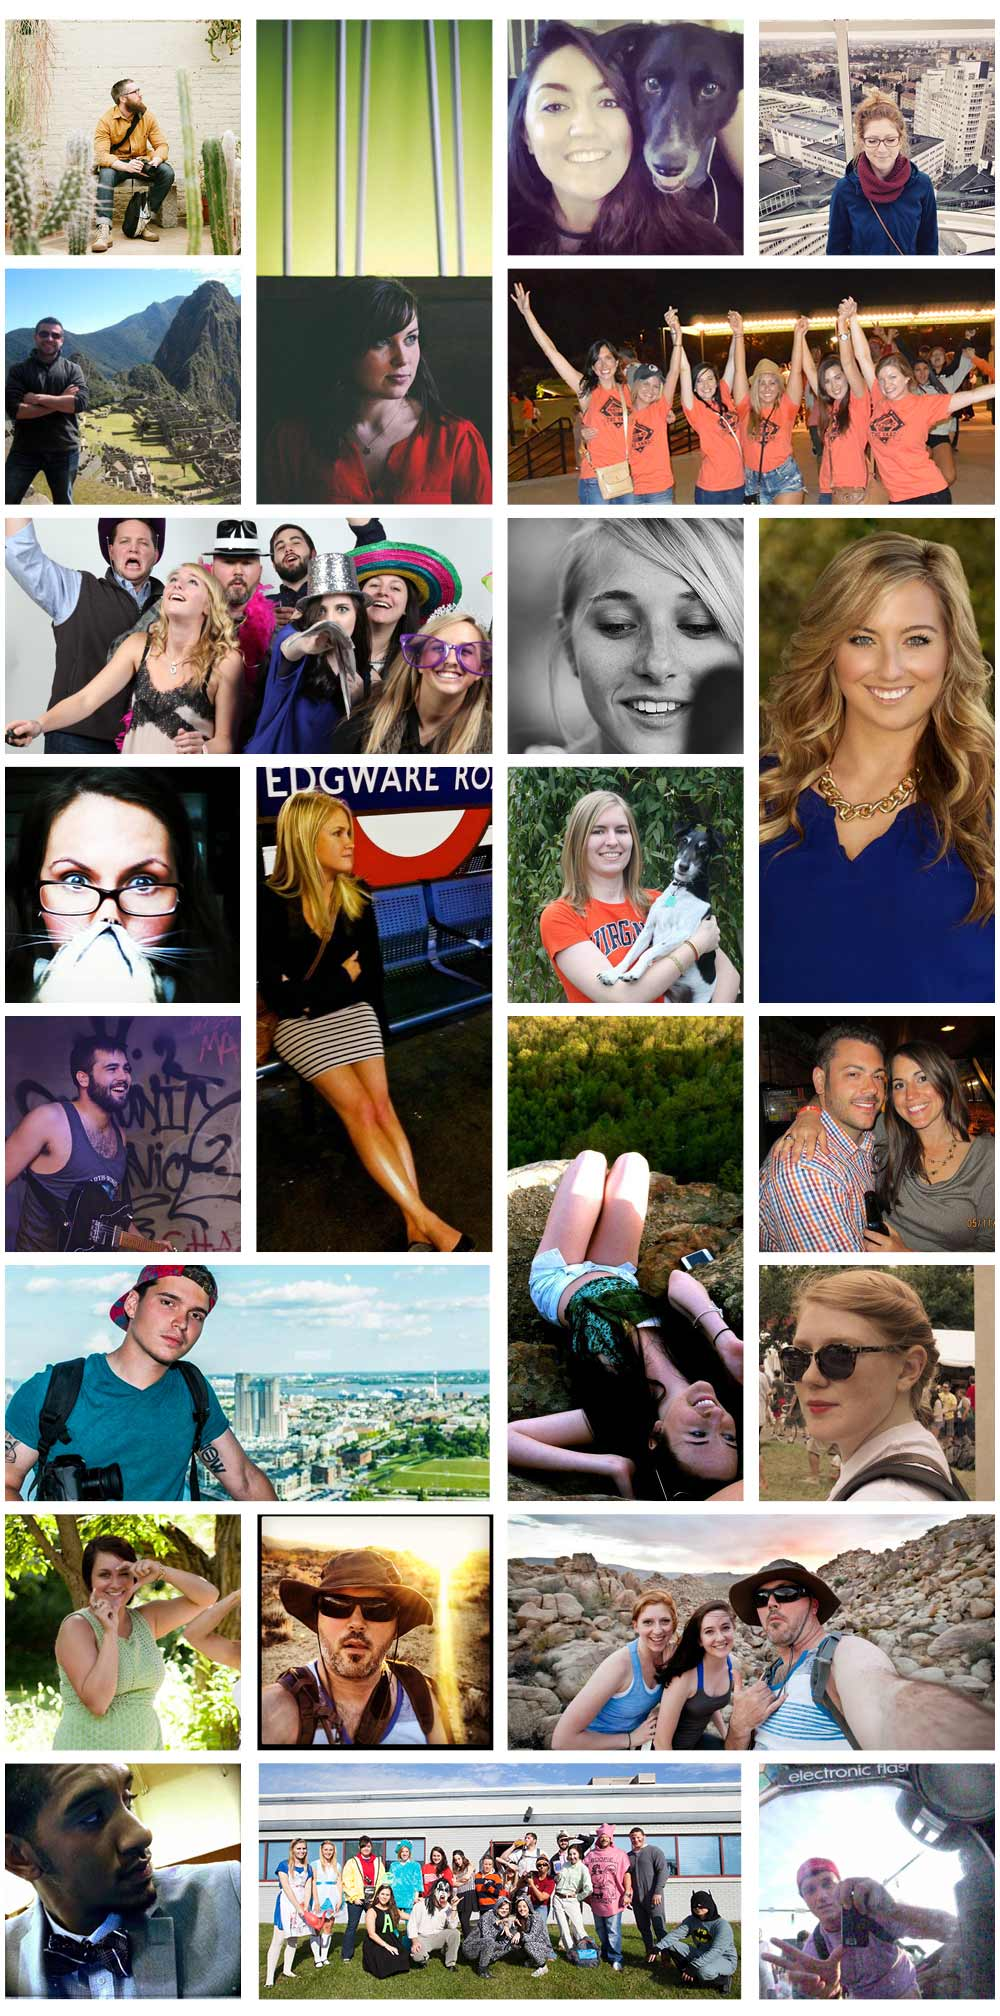 the greekyearbook crew - individual photos of everyone